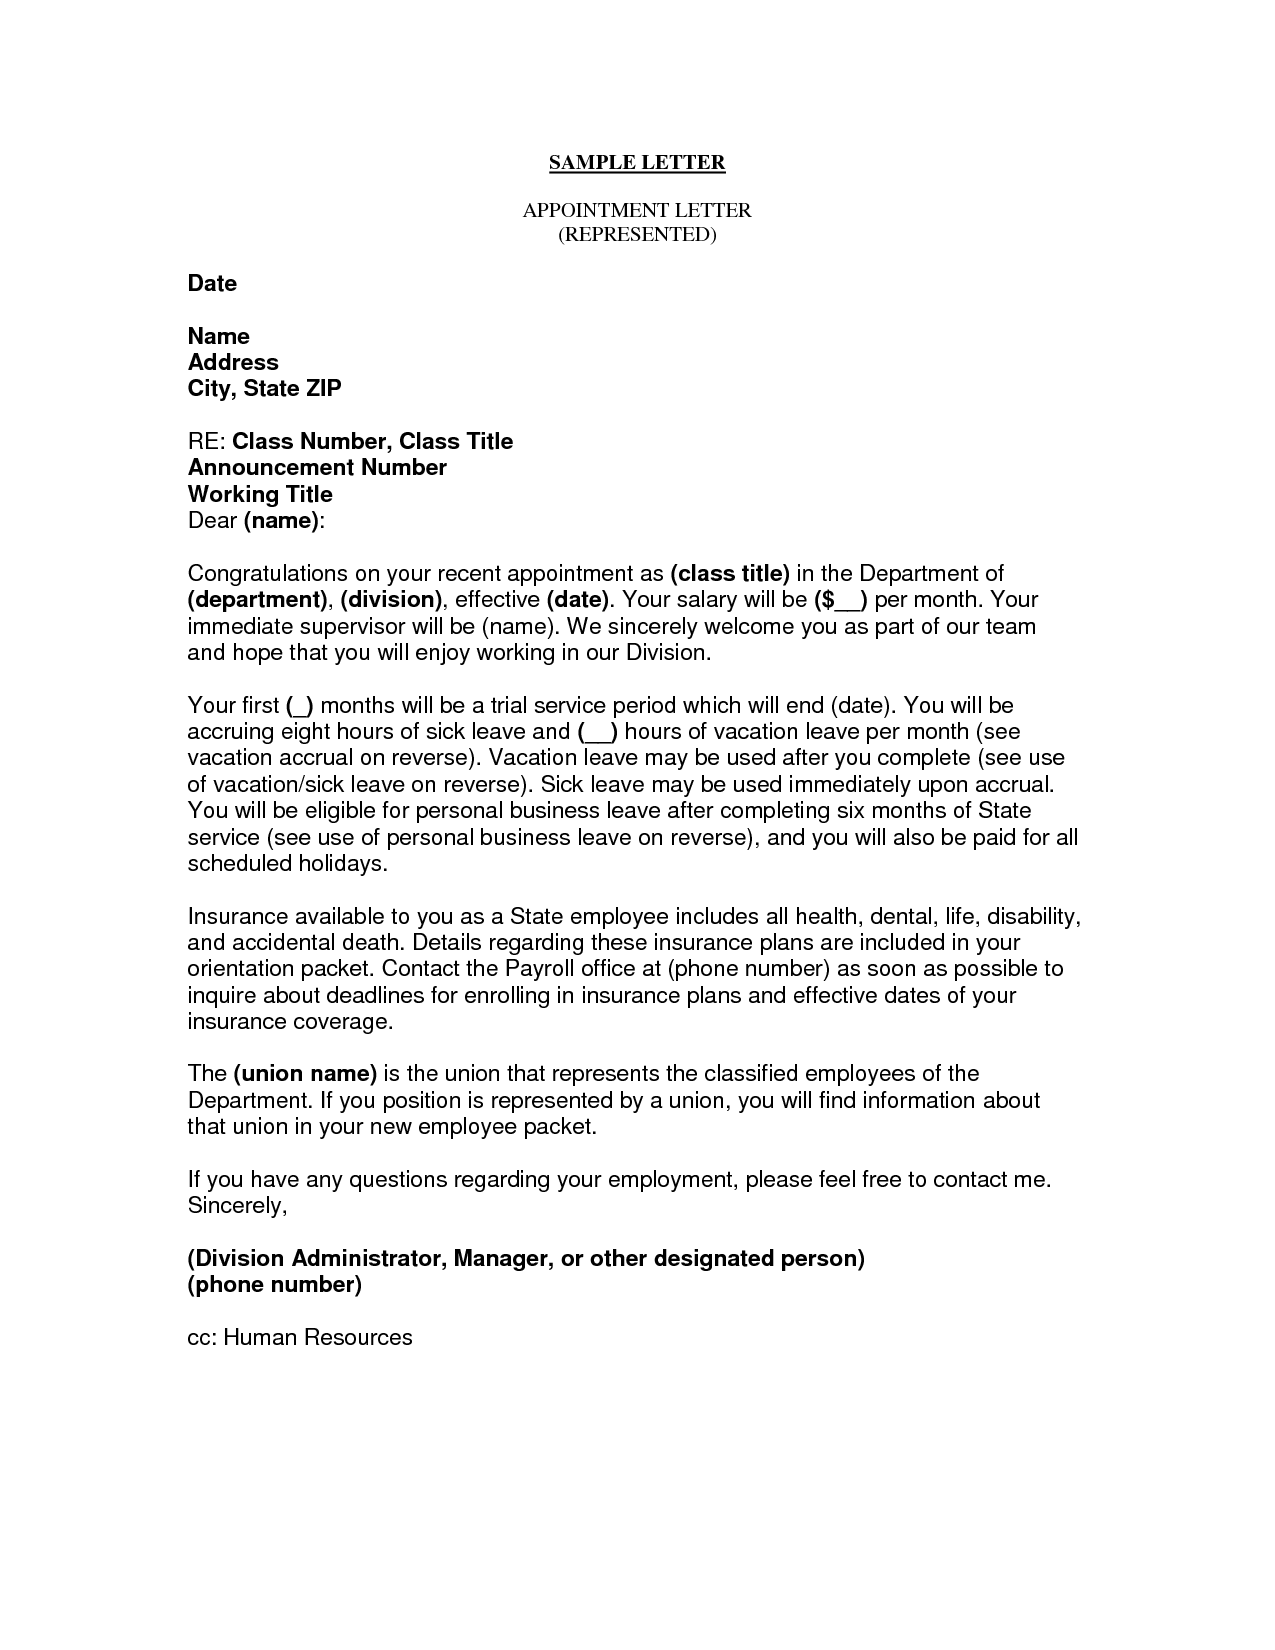 Business appointment letter this letter is used in any business business appointment letter this letter is used in any business organizations for getting the appointment flashek Images